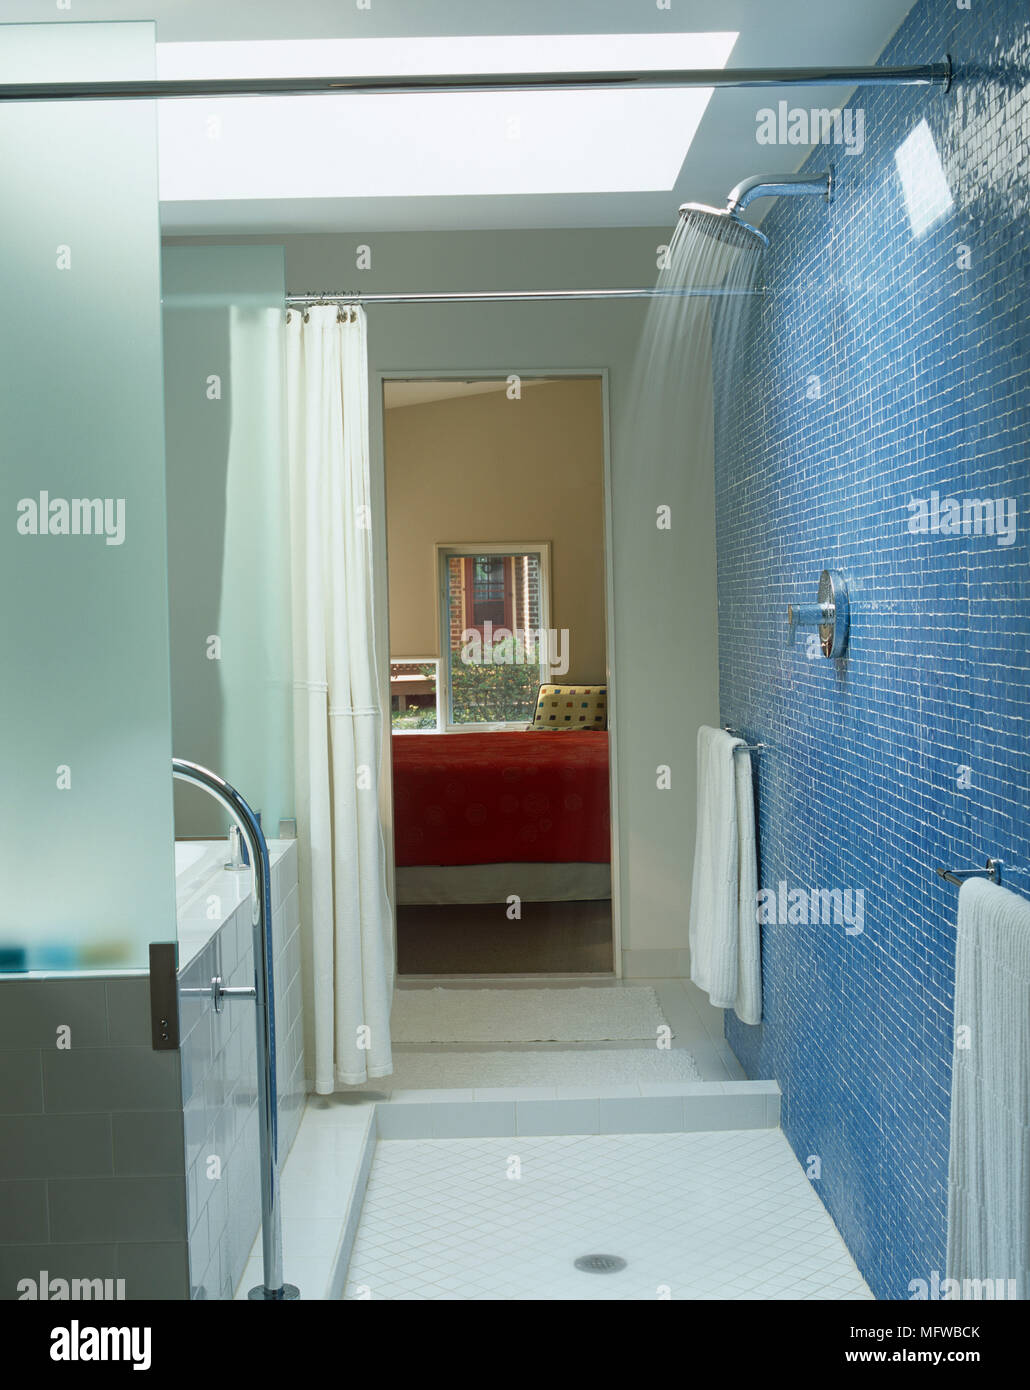 Shower with running water in blue tiled bathroom Stock Photo ...